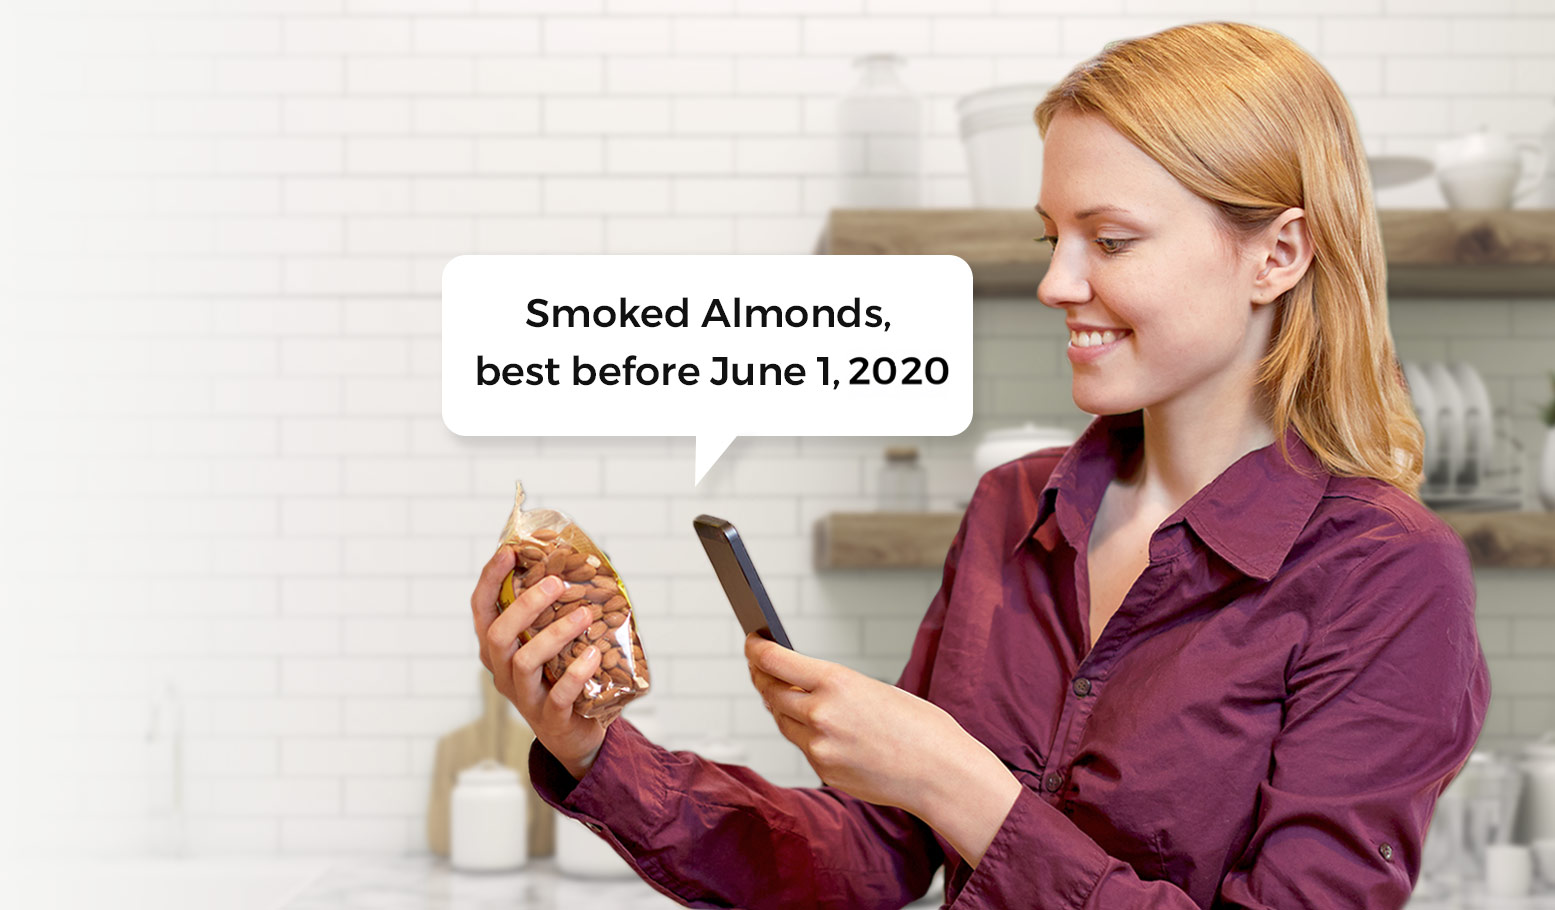 Woman holding phone up to bag of almonds. A speech bubble from the phone says: Smoked Almonds, expires June 1, 2020